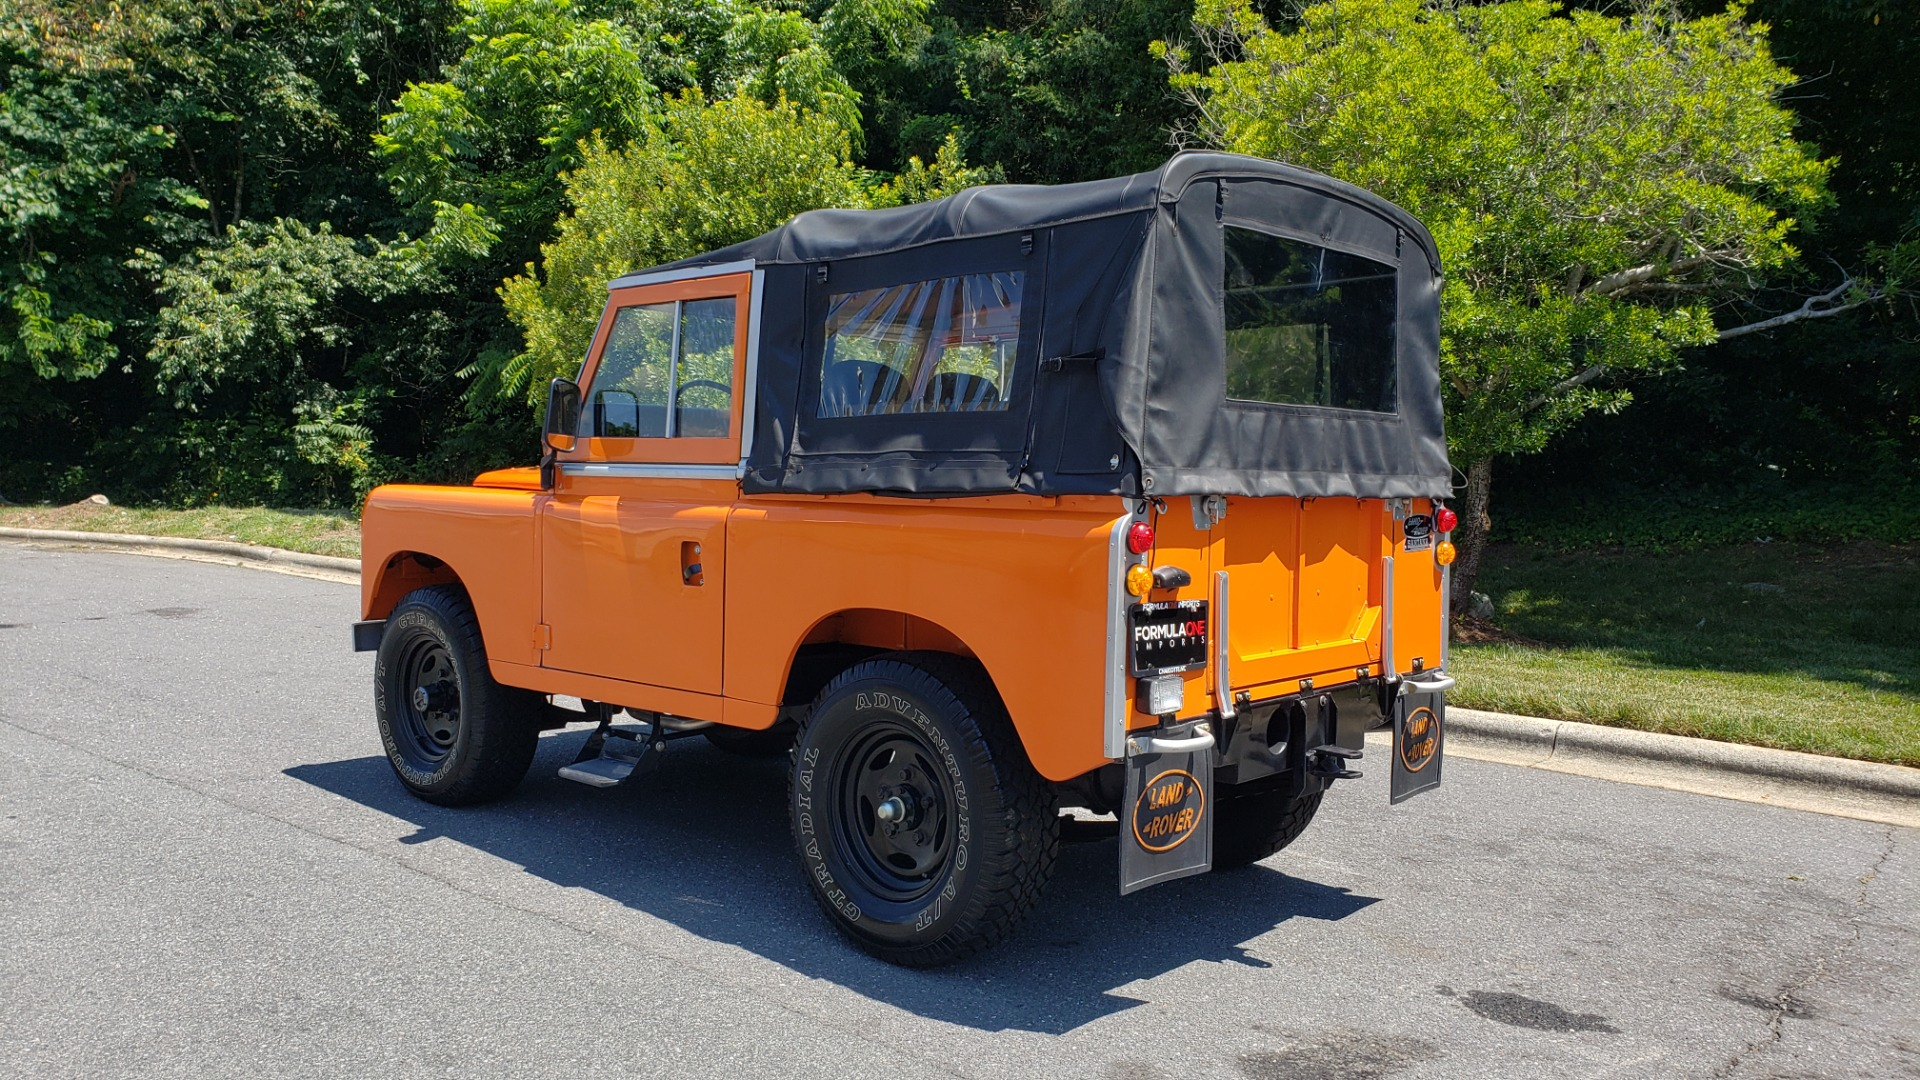 Used 1982 Land Rover SERIES 3 4X4 / SOFT-TOP / FULLY RESTORED / RUNS GREAT for sale $41,900 at Formula Imports in Charlotte NC 28227 3